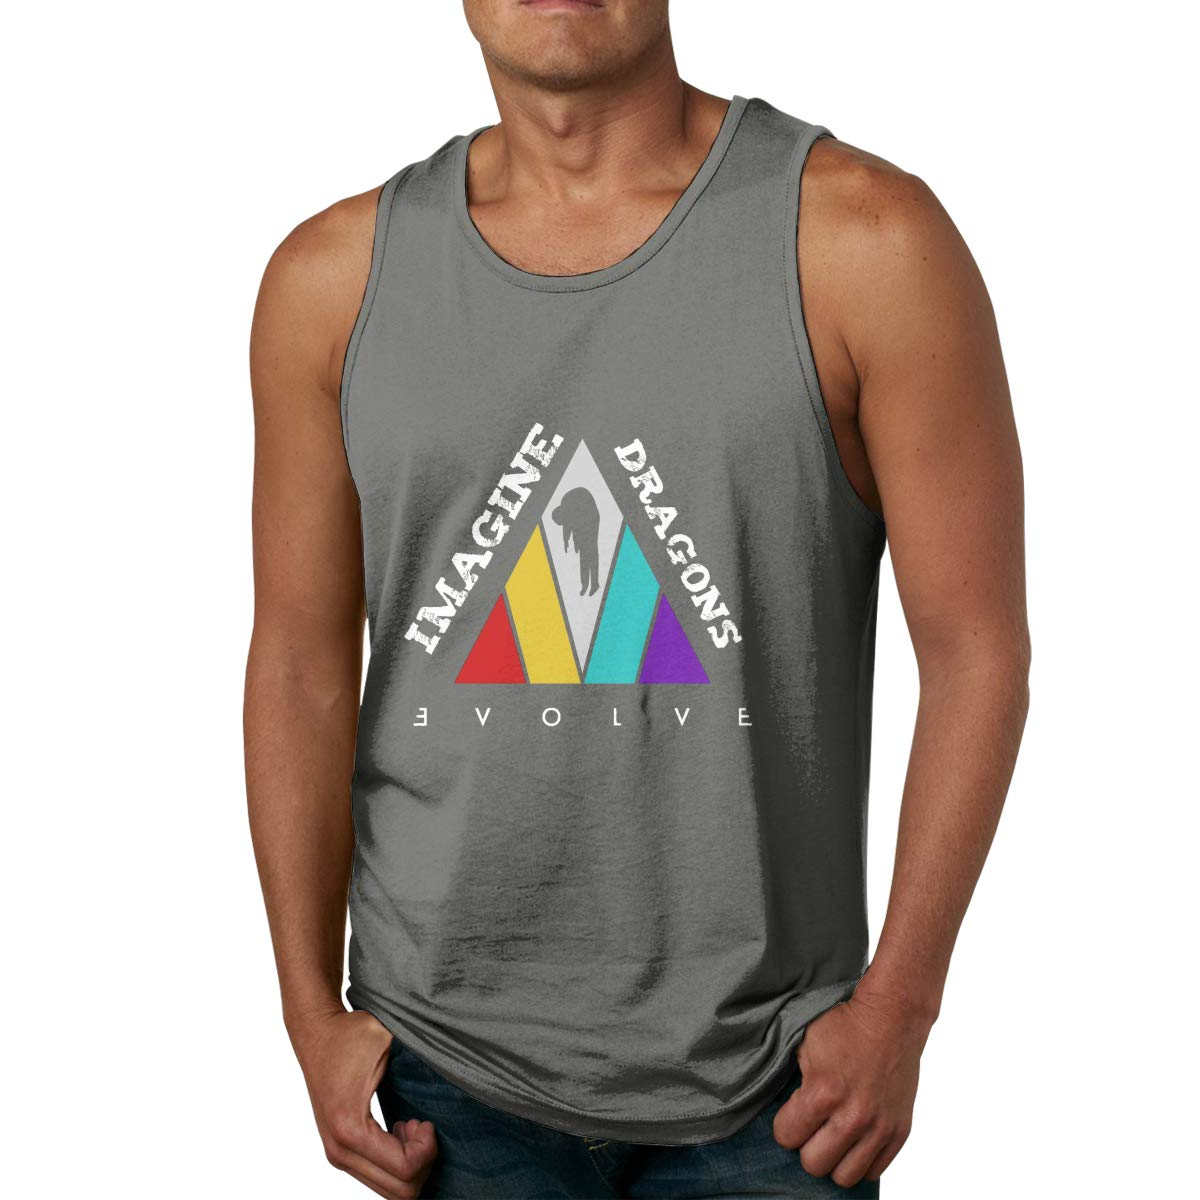 Imagine-The Dragons-Evolve Mens Cool Breathable Tank Top Funny Soft Lightweight Tees S-3XL